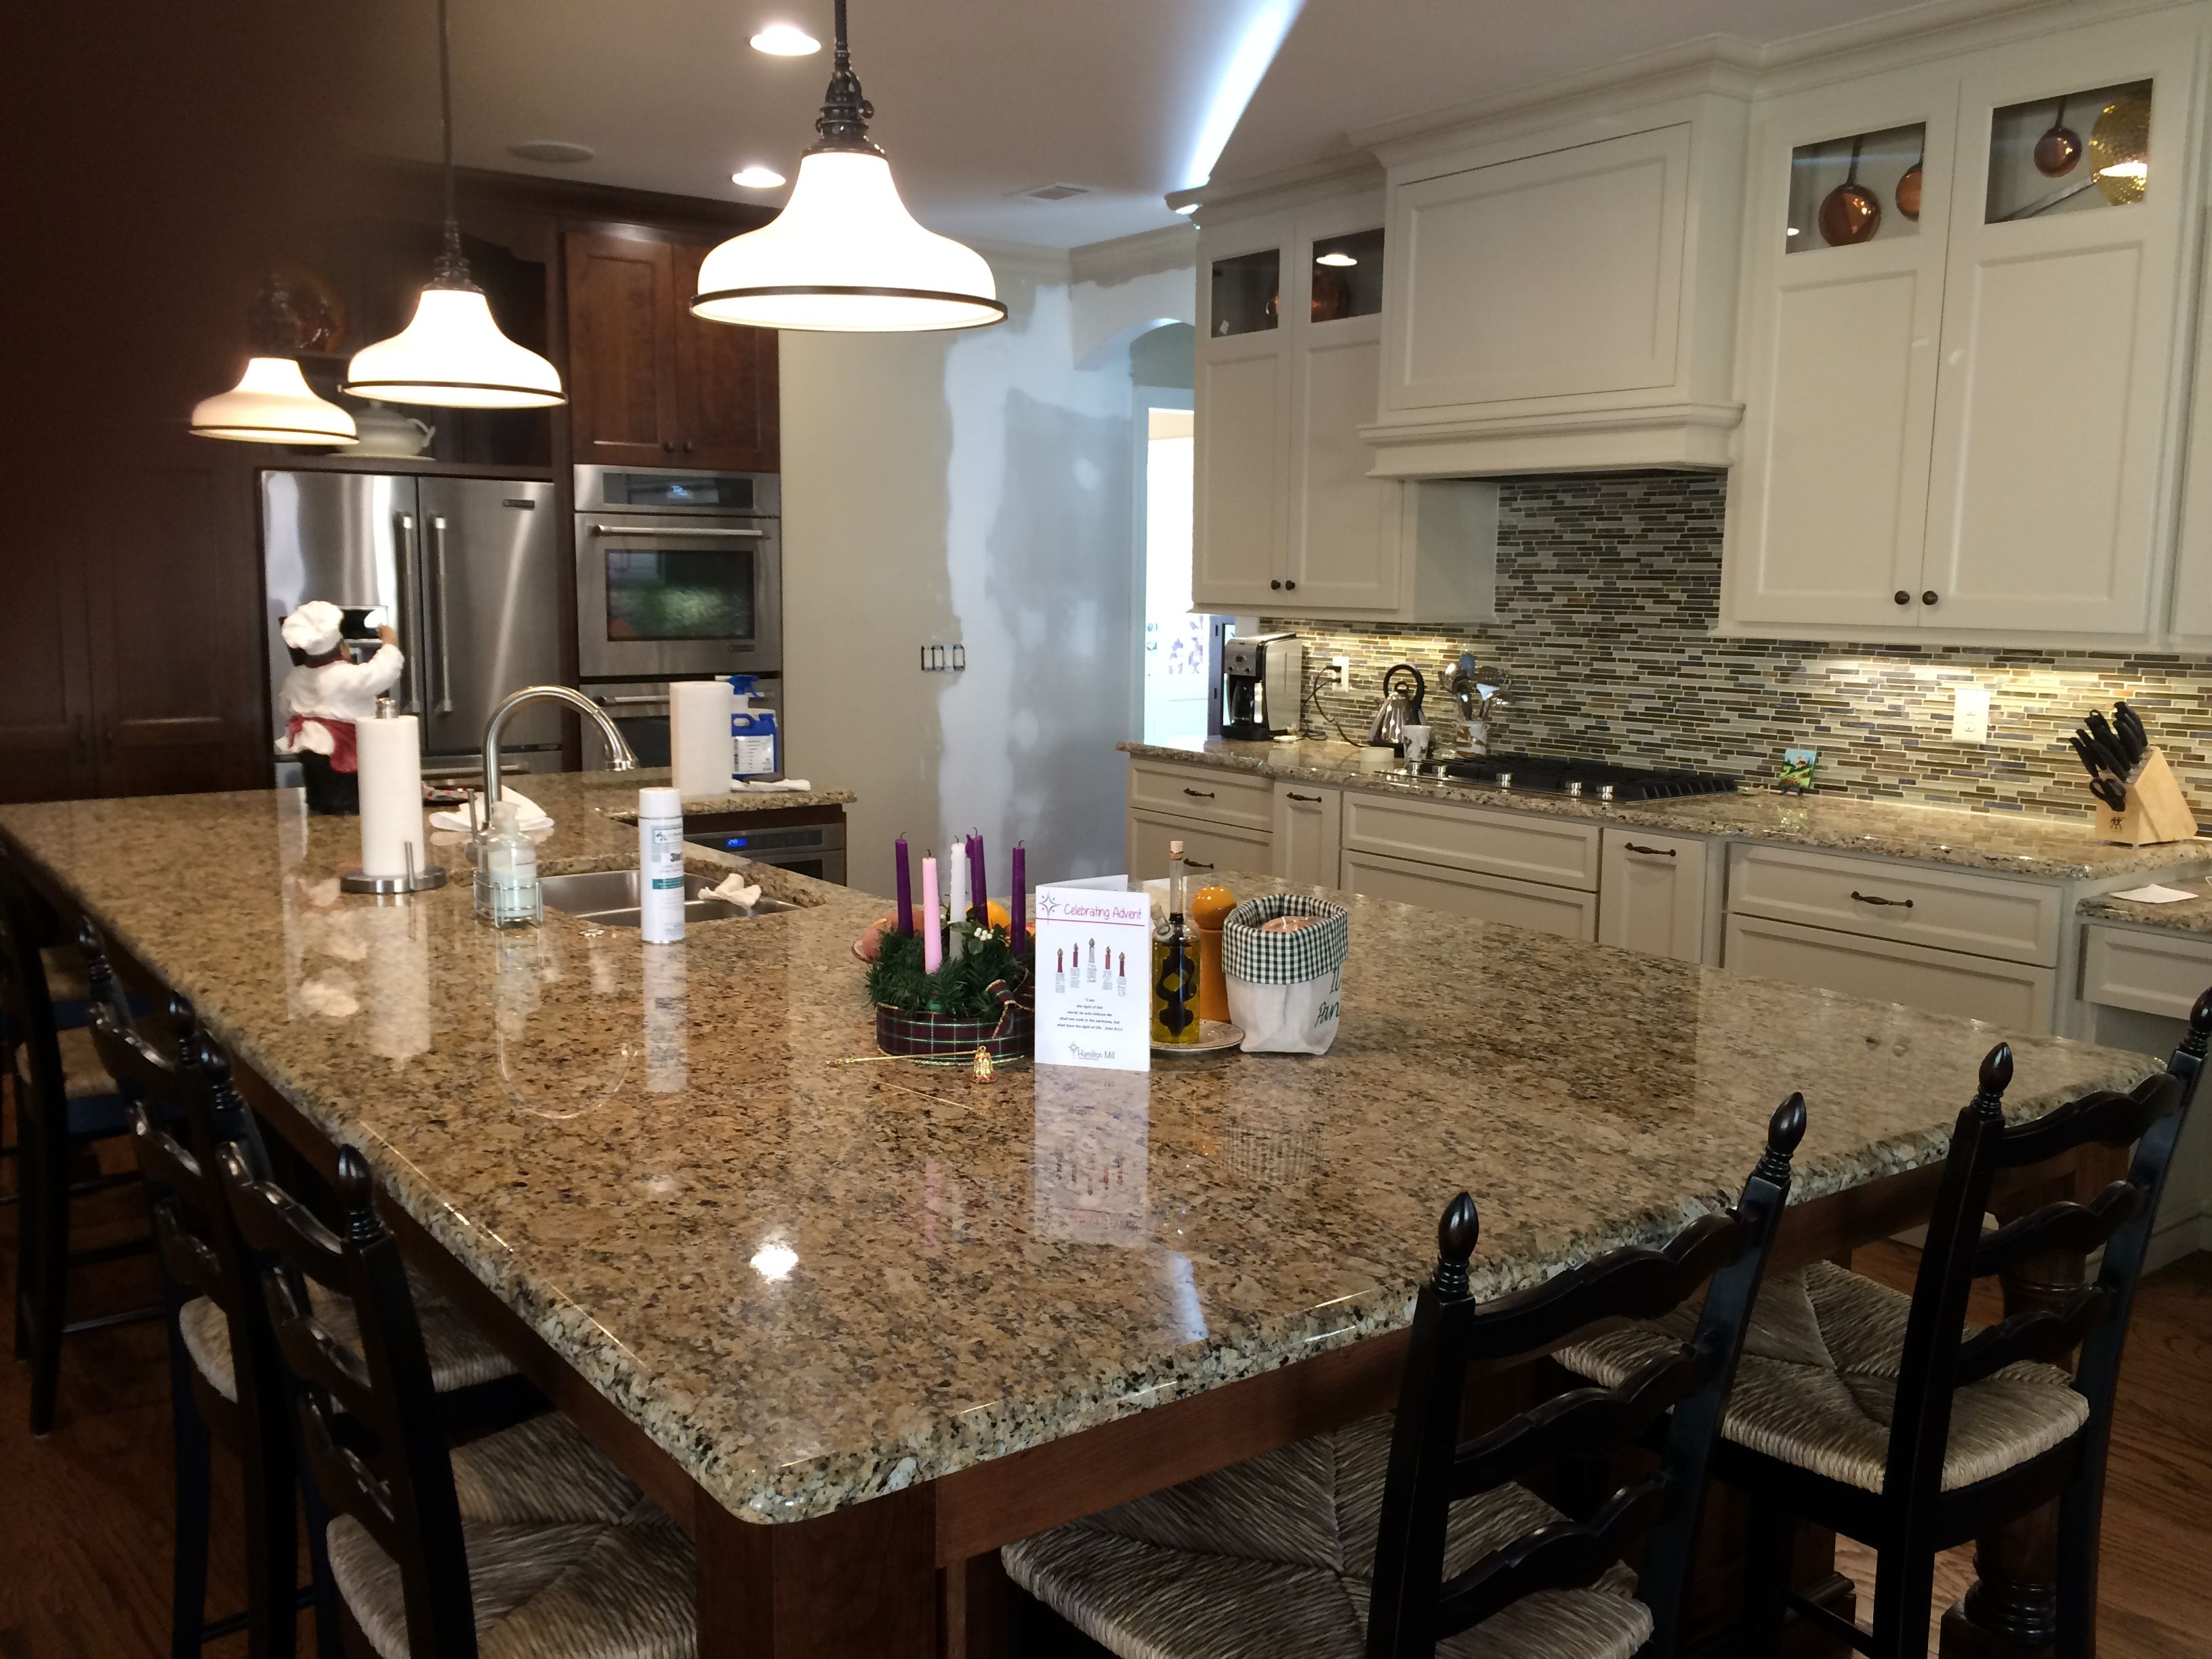 When It Comes To Natural Stone Countertops, AA Marble U0026 Granite Canu0027t Be  Beaten; Our On Site Stone Yard Boasts Over 1800 Slabs Of Granite, Marble,  Quartz, ...